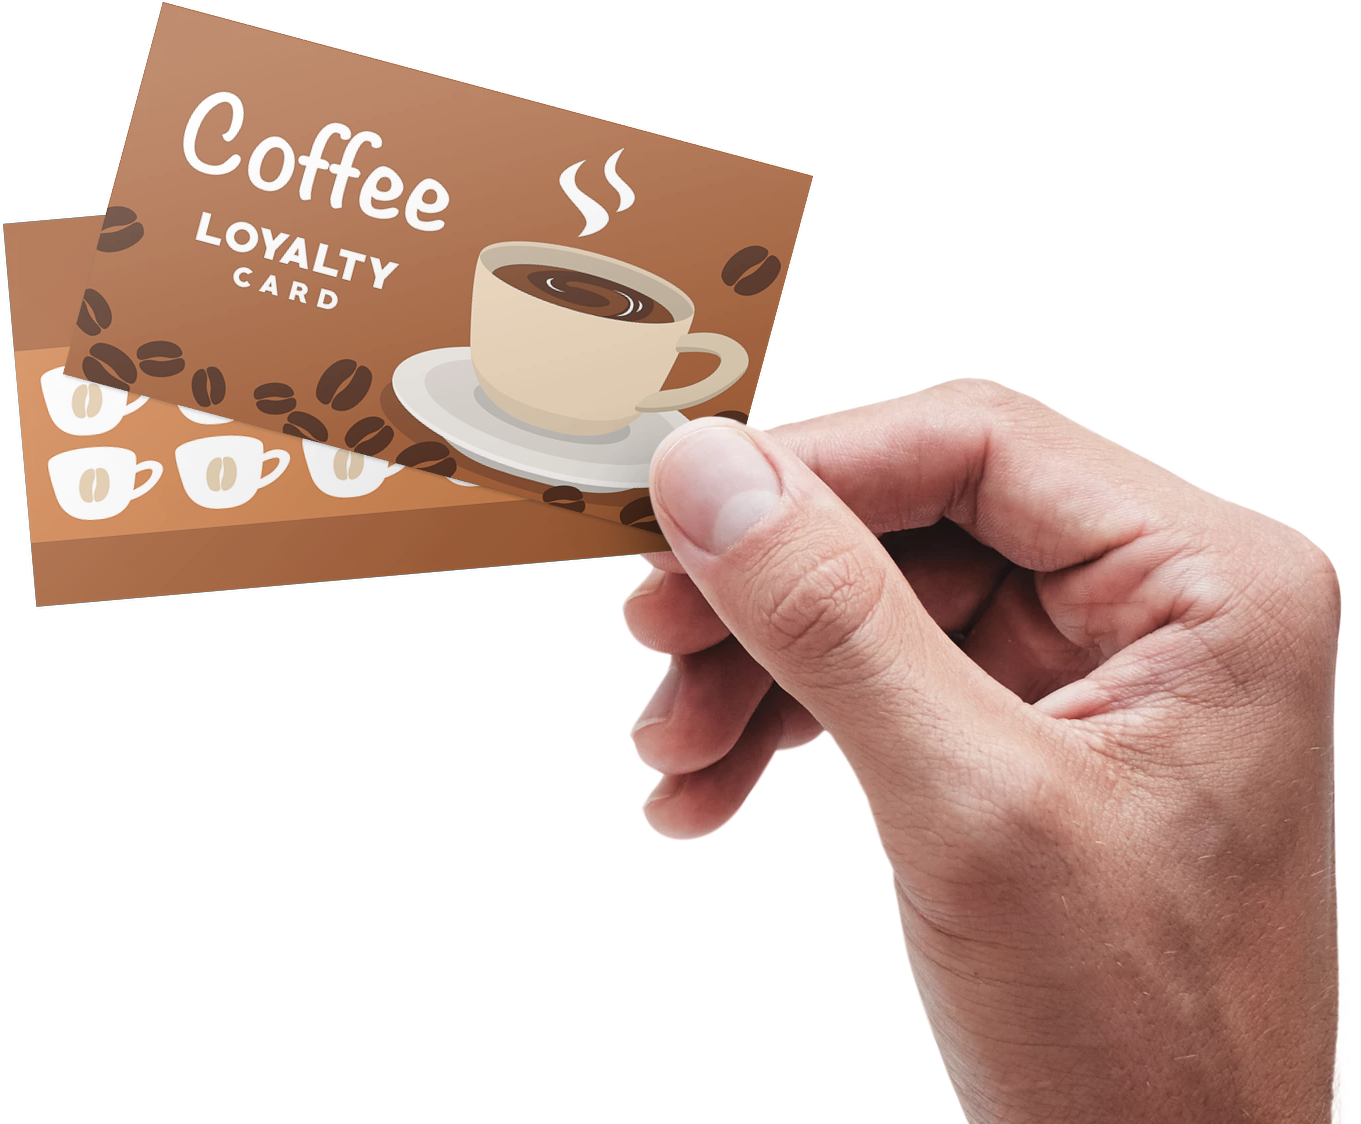 Coffee Card copy.png